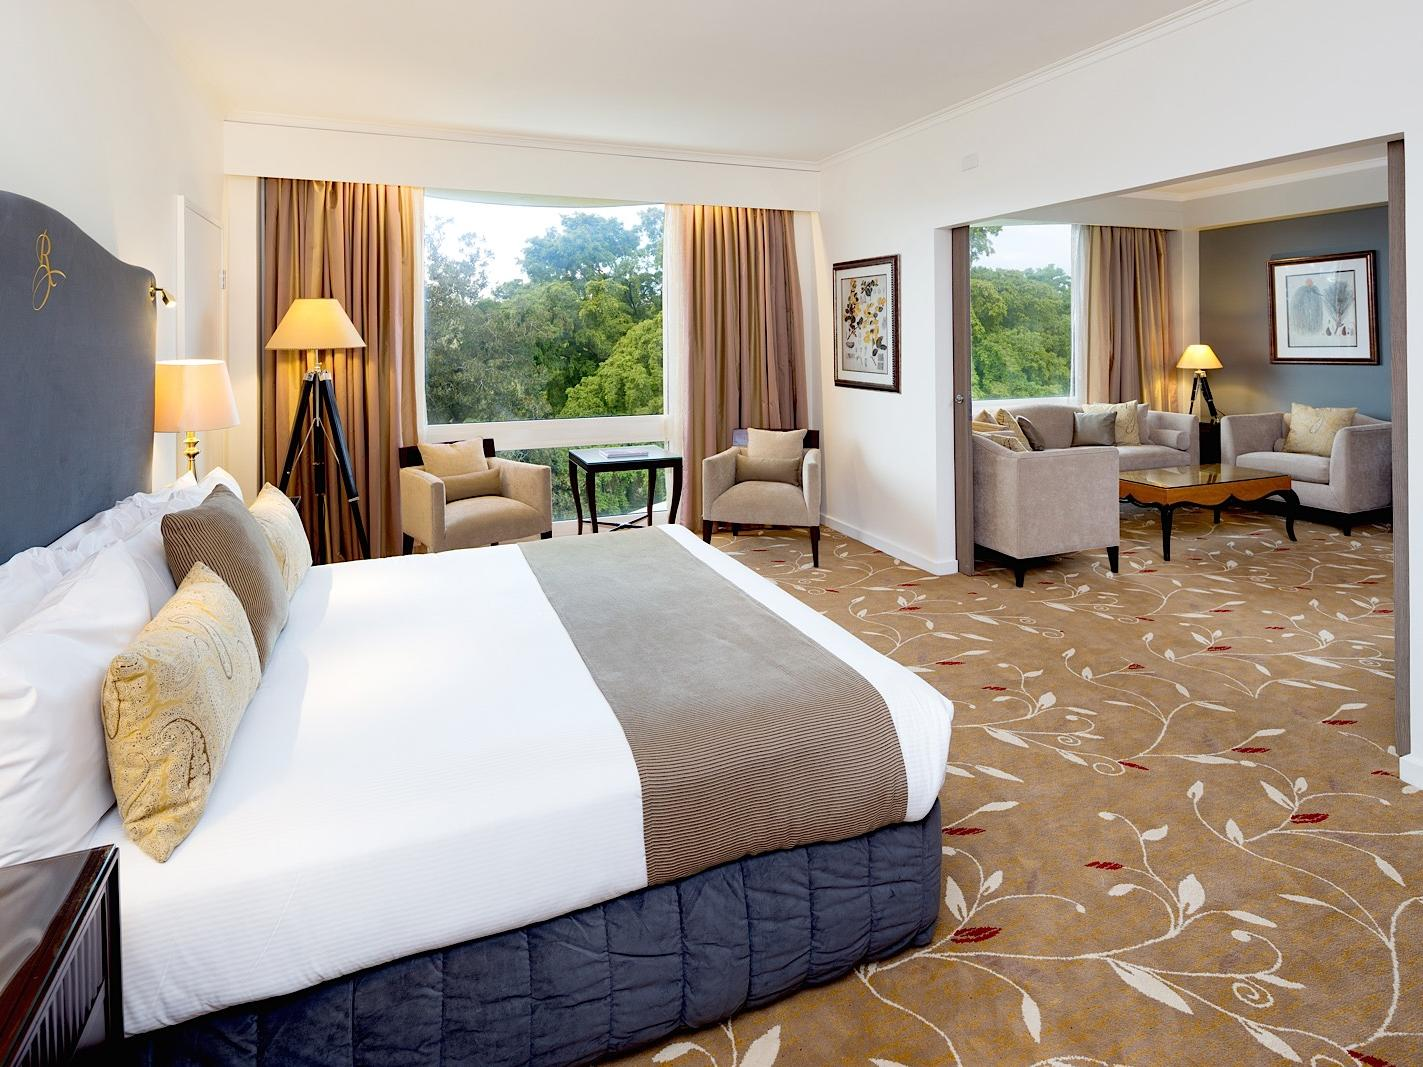 Junior Suite with one king bed and a beautiful view at Royal on the Park hotel